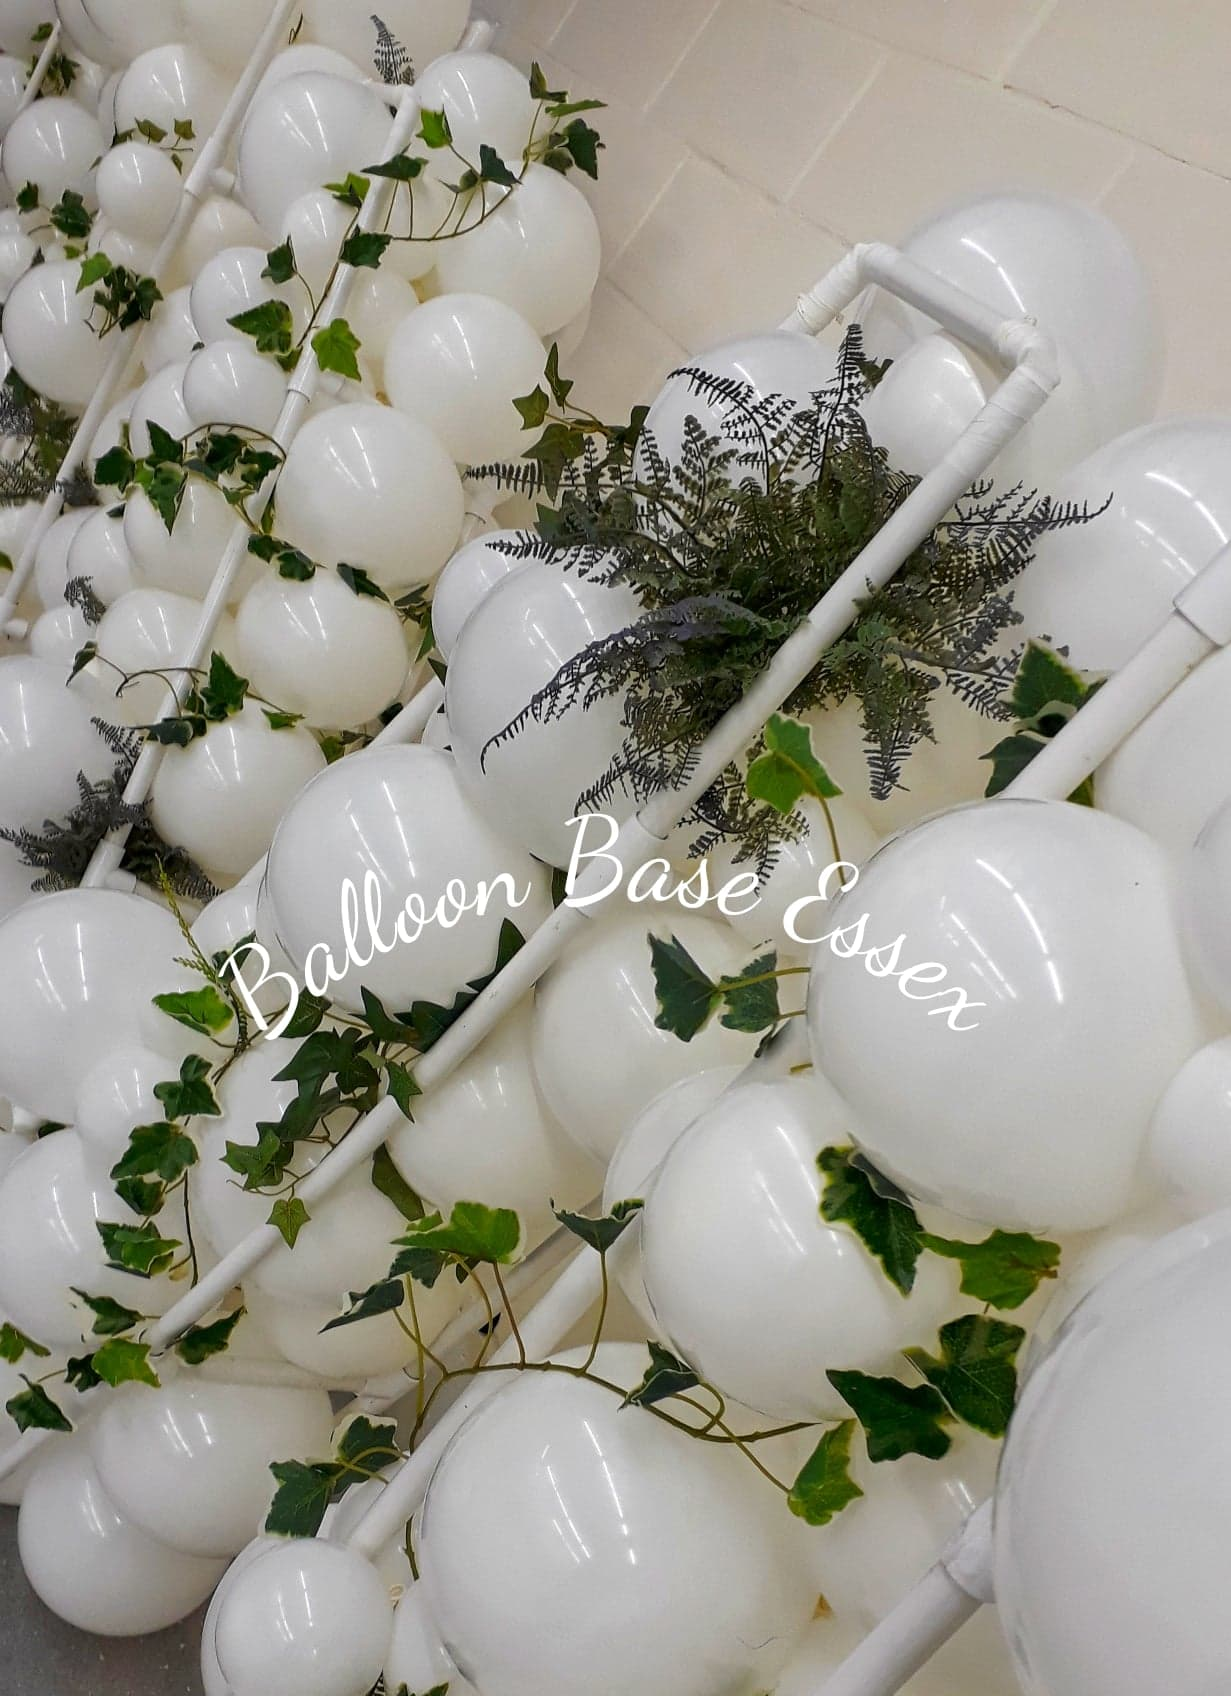 White organic style balloons with foliage